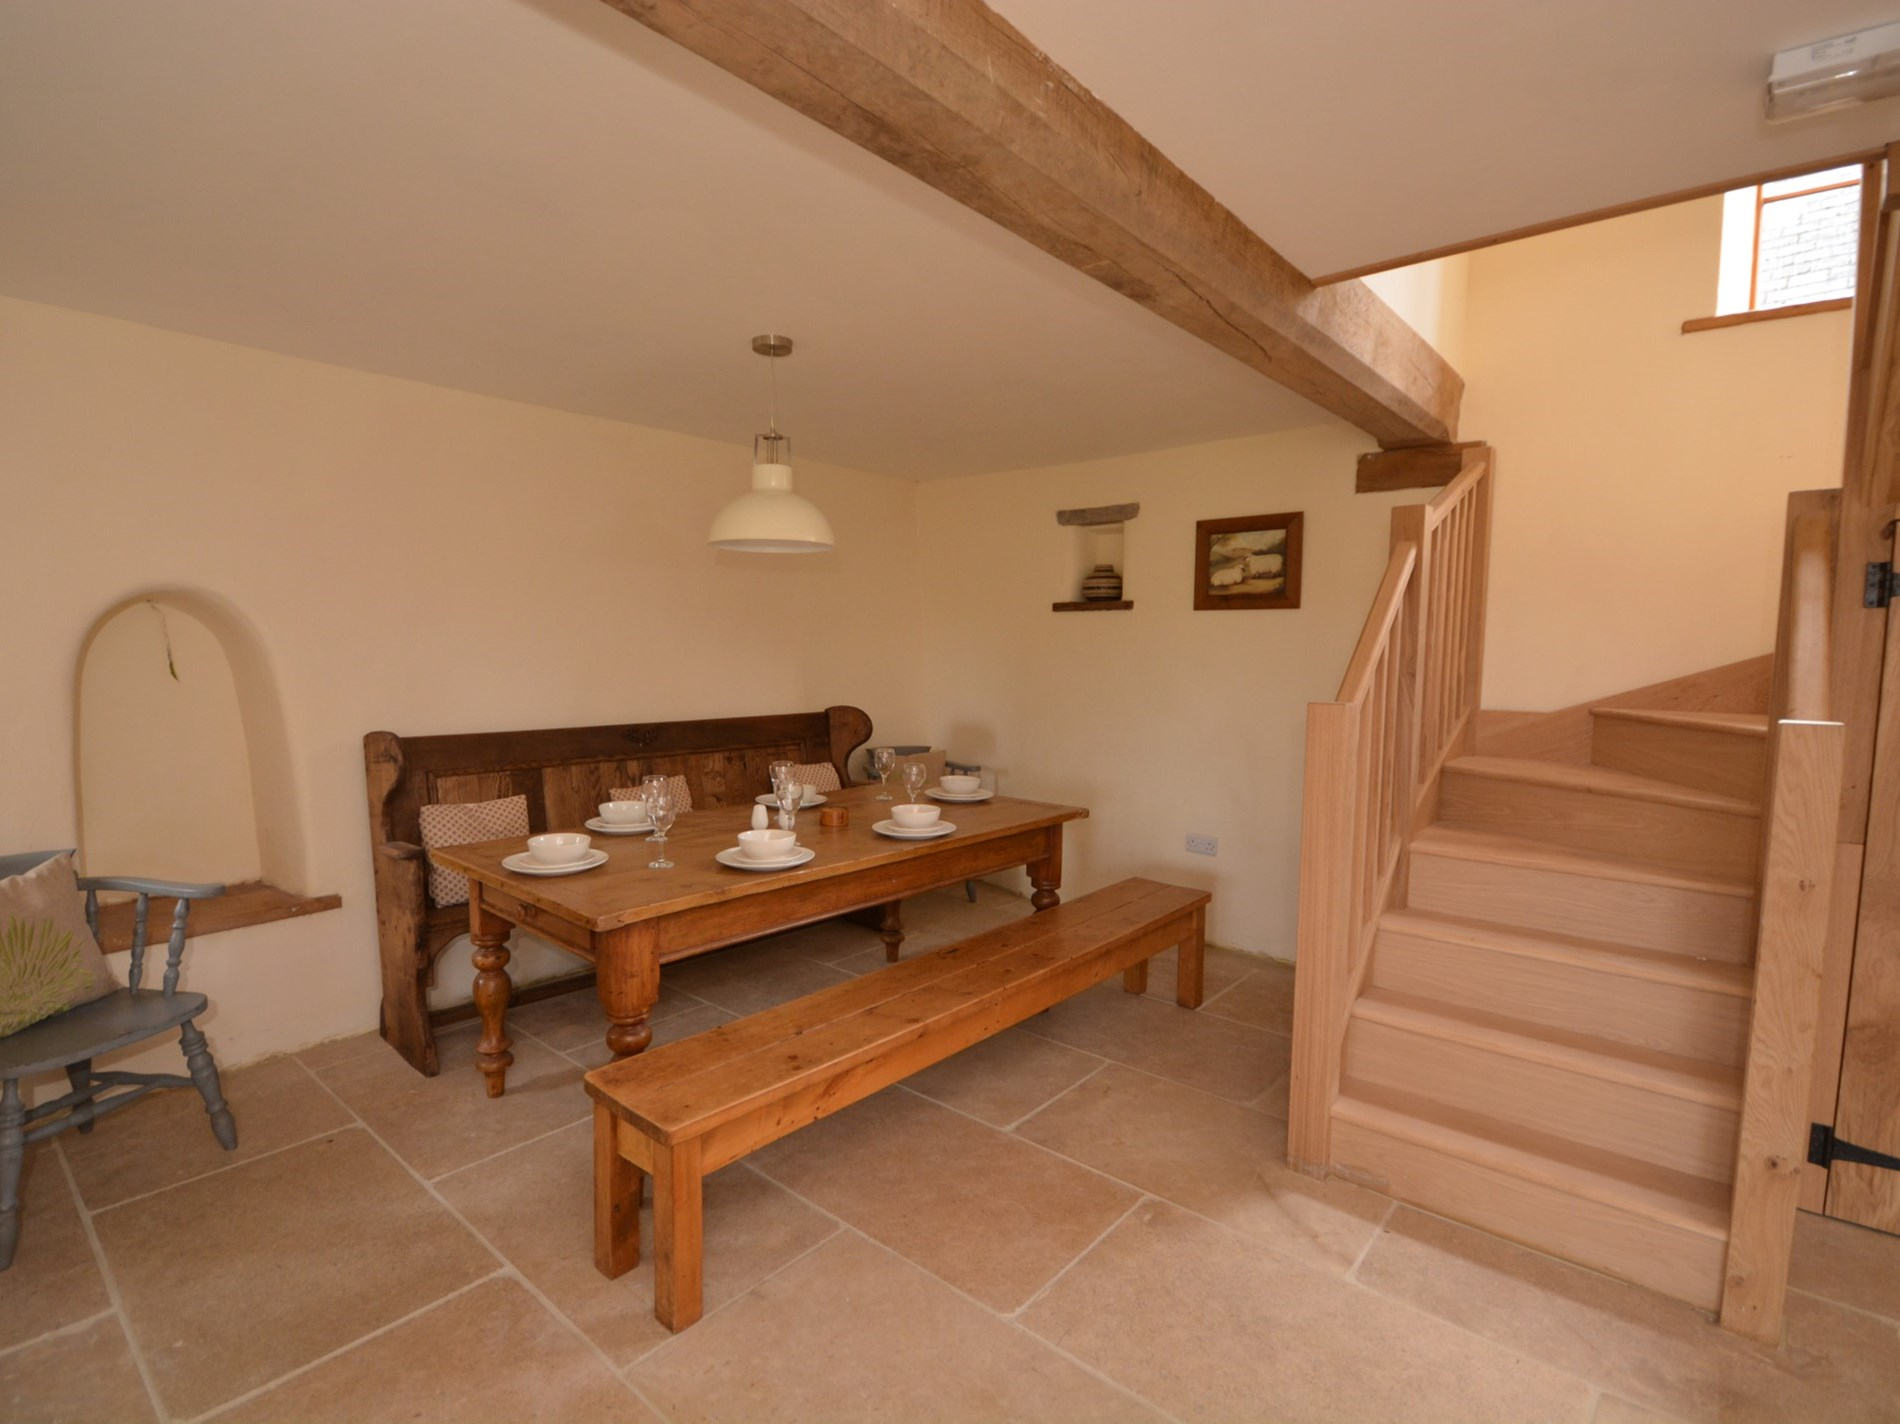 3 Bedroom Cottage in Tiverton, Devon